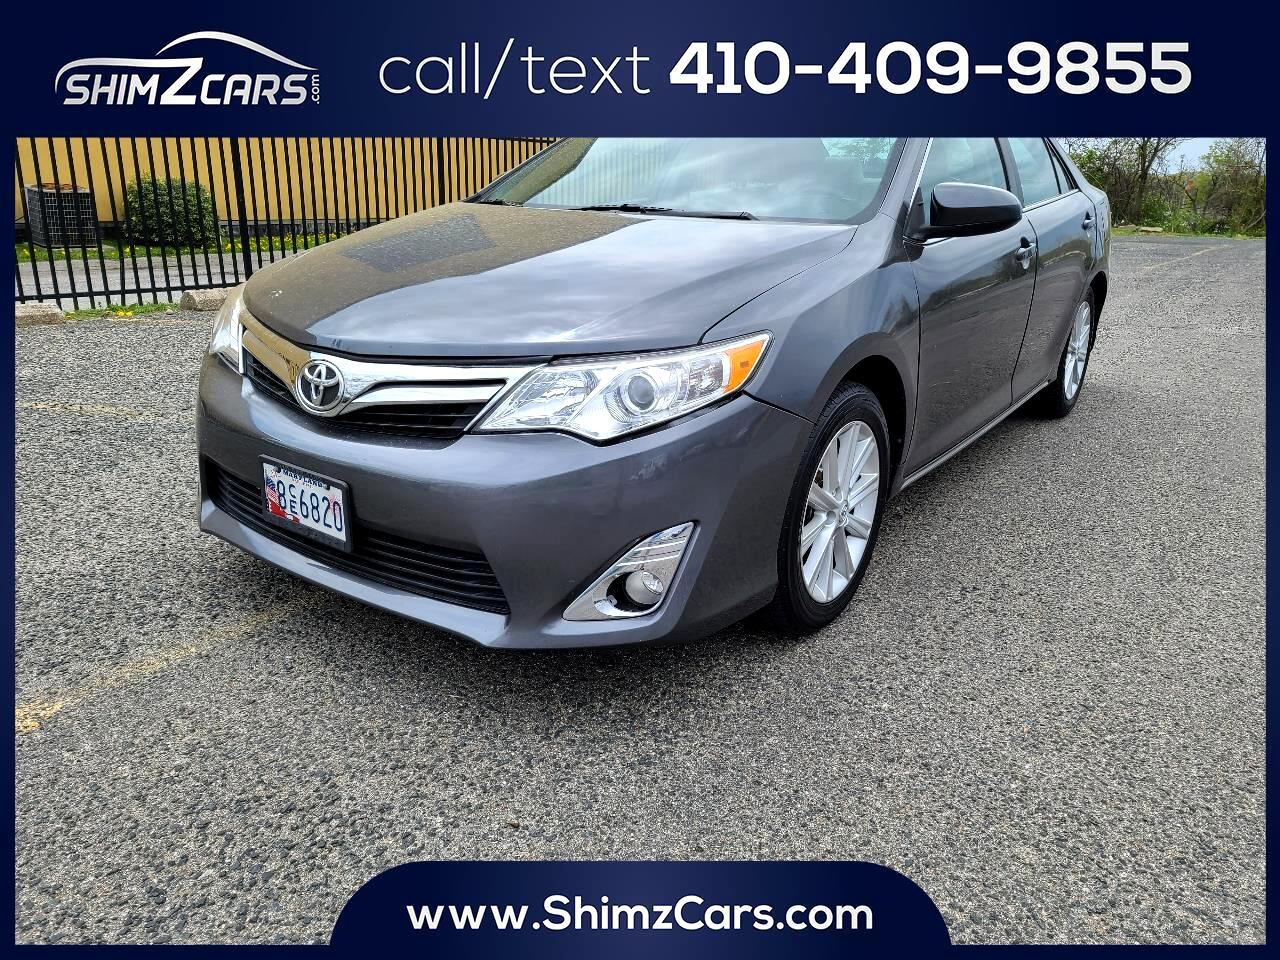 Toyota Camry 4dr Sdn V6 Auto XLE (Natl) 2012